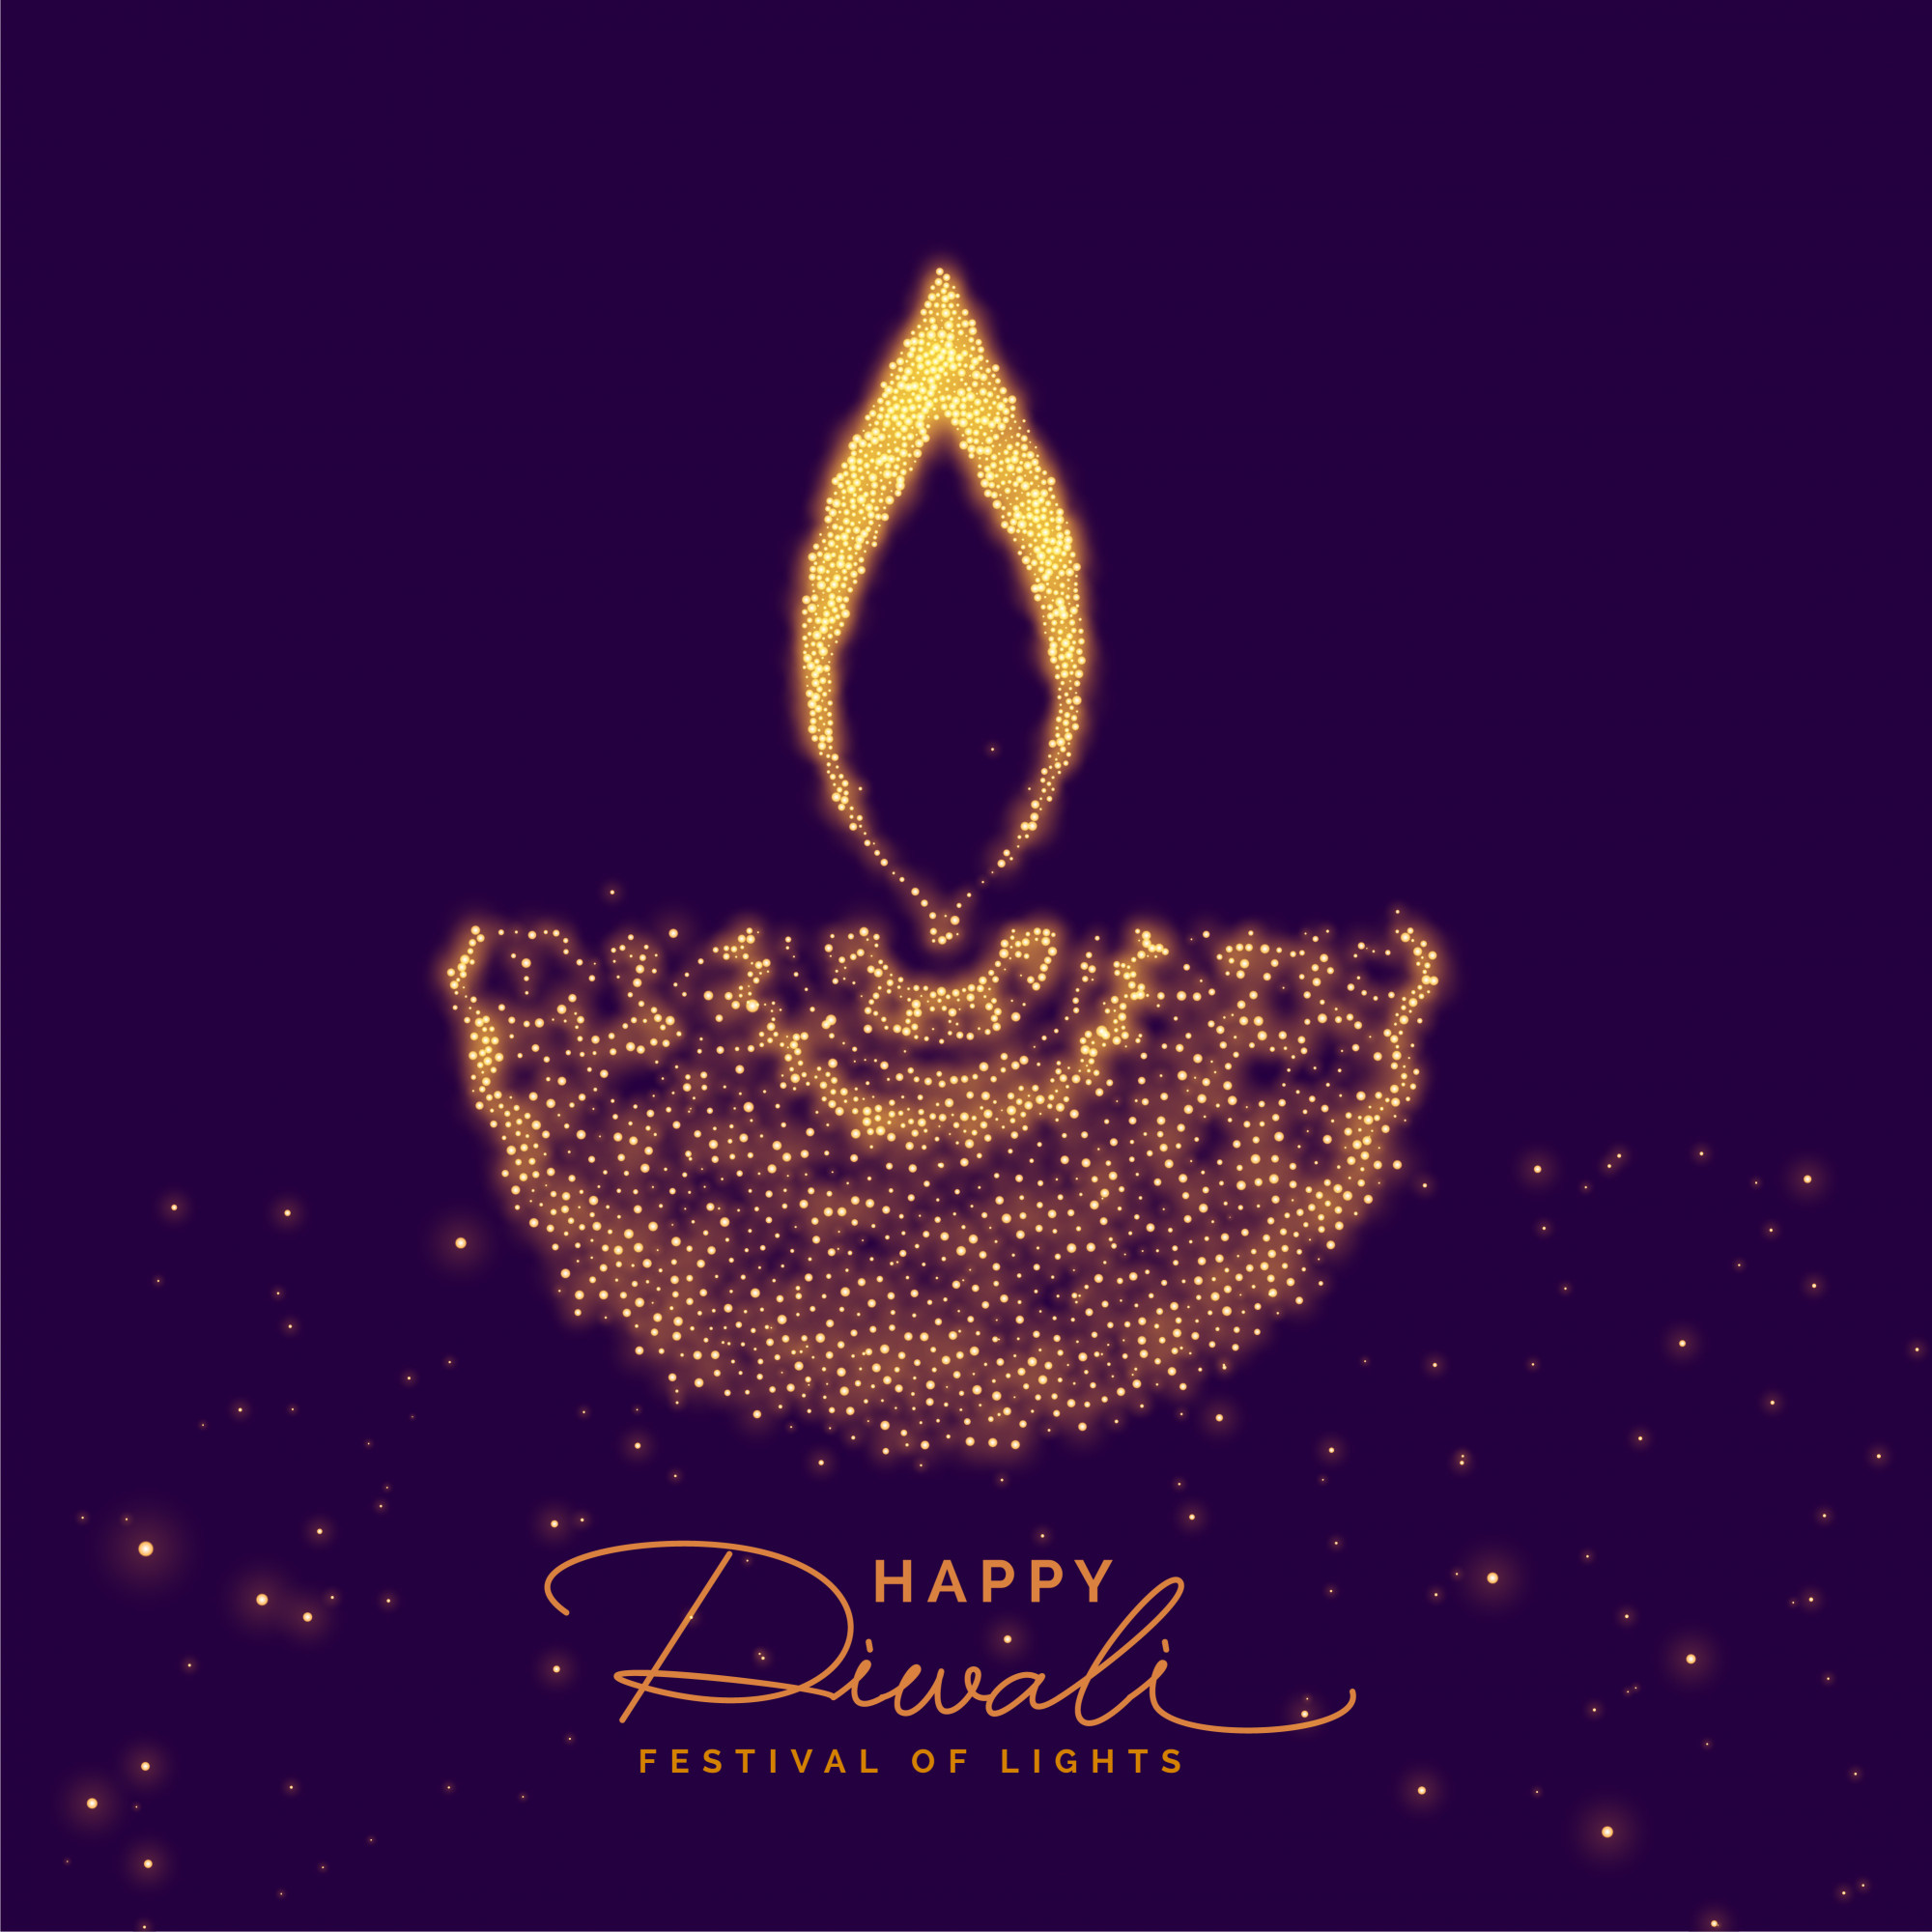 Creative diwali diya made with golden particle